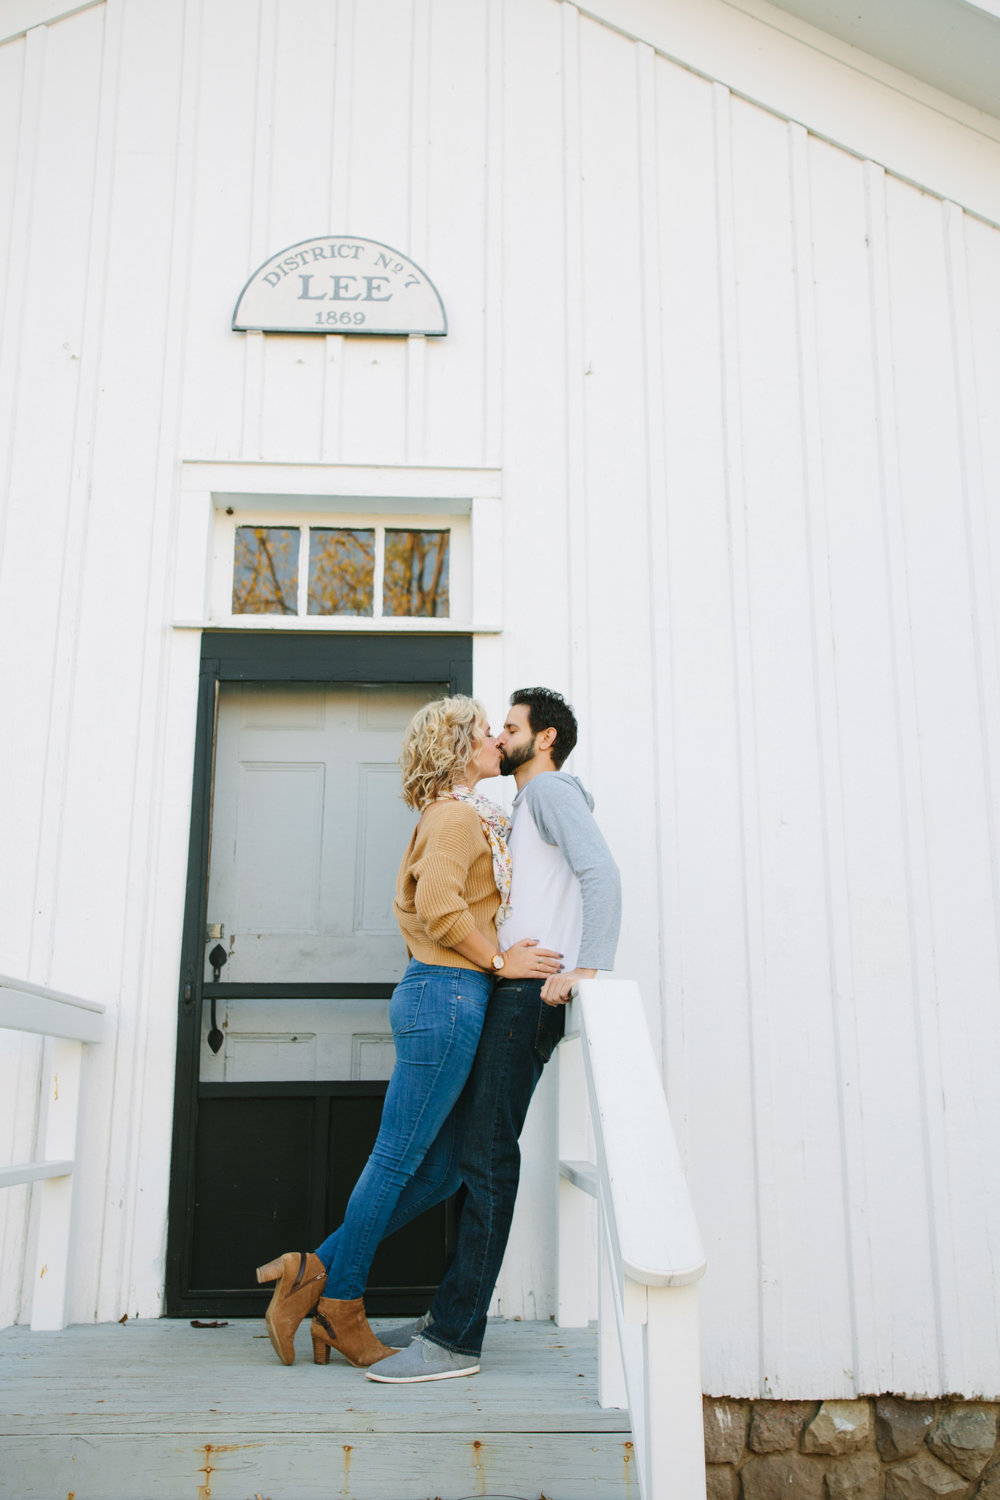 charltonpark_engagementsession_grandrapidsphotographer_grandrapids_hastings_michiganwedding_fallengagement_fallwedding_jdarlingphoto_jessicadarling_westmichiganphotographer_wedding_fall_rusticwedding  003.jpg